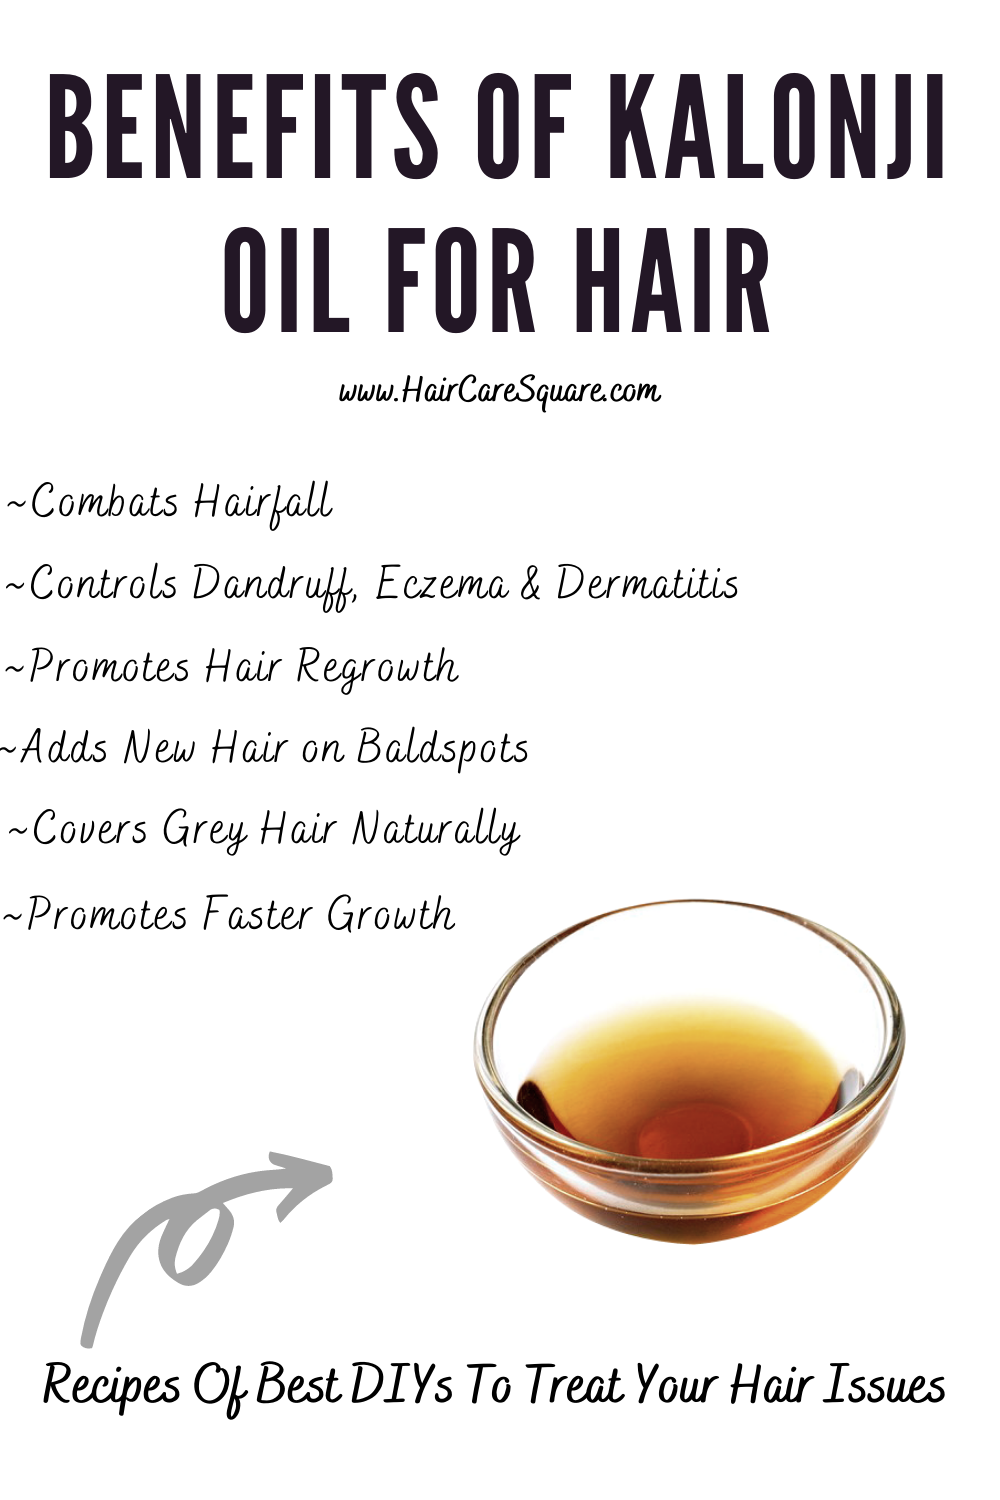 benefits of kalonji oil for hair